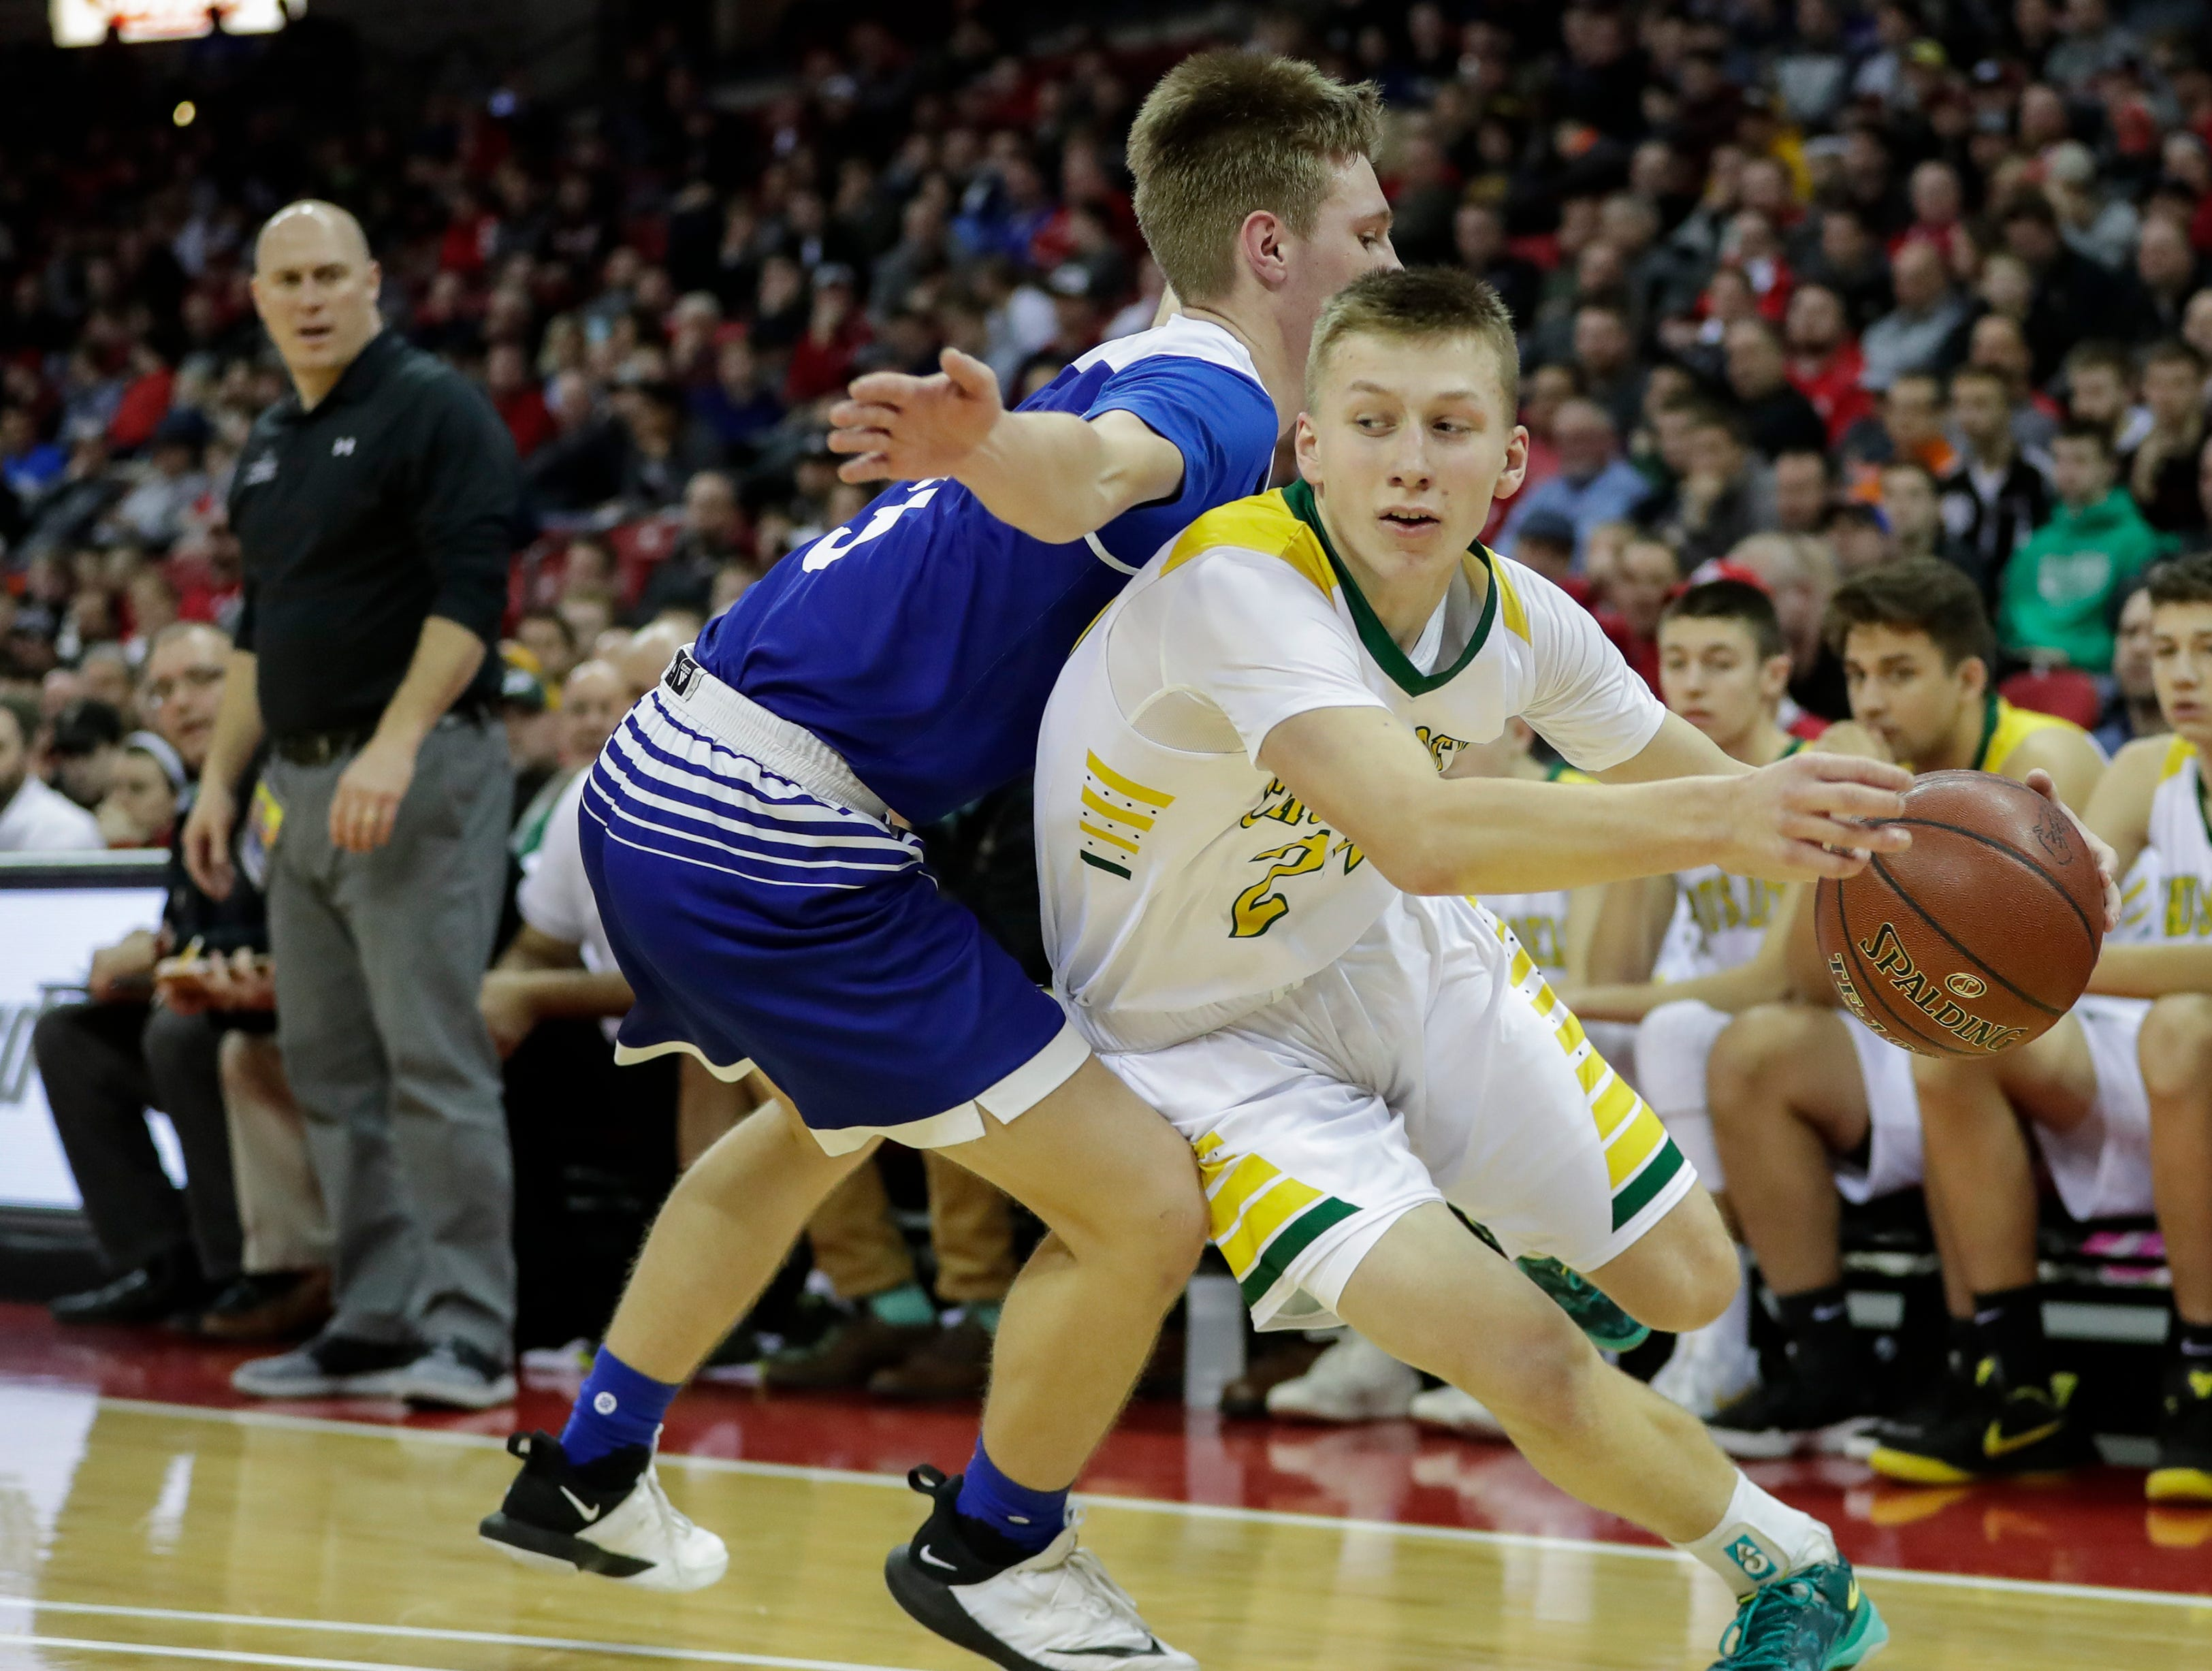 Sheboygan Area Lutheran High School's Casey Verhagen (24) drives down the baseline against McDonell Central Catholic High School's JD Bohaty (3) during their WIAA Division 5 boys basketball state semifinal at the Kohl Center Friday, March 15, 2019, in Madison, Wis.